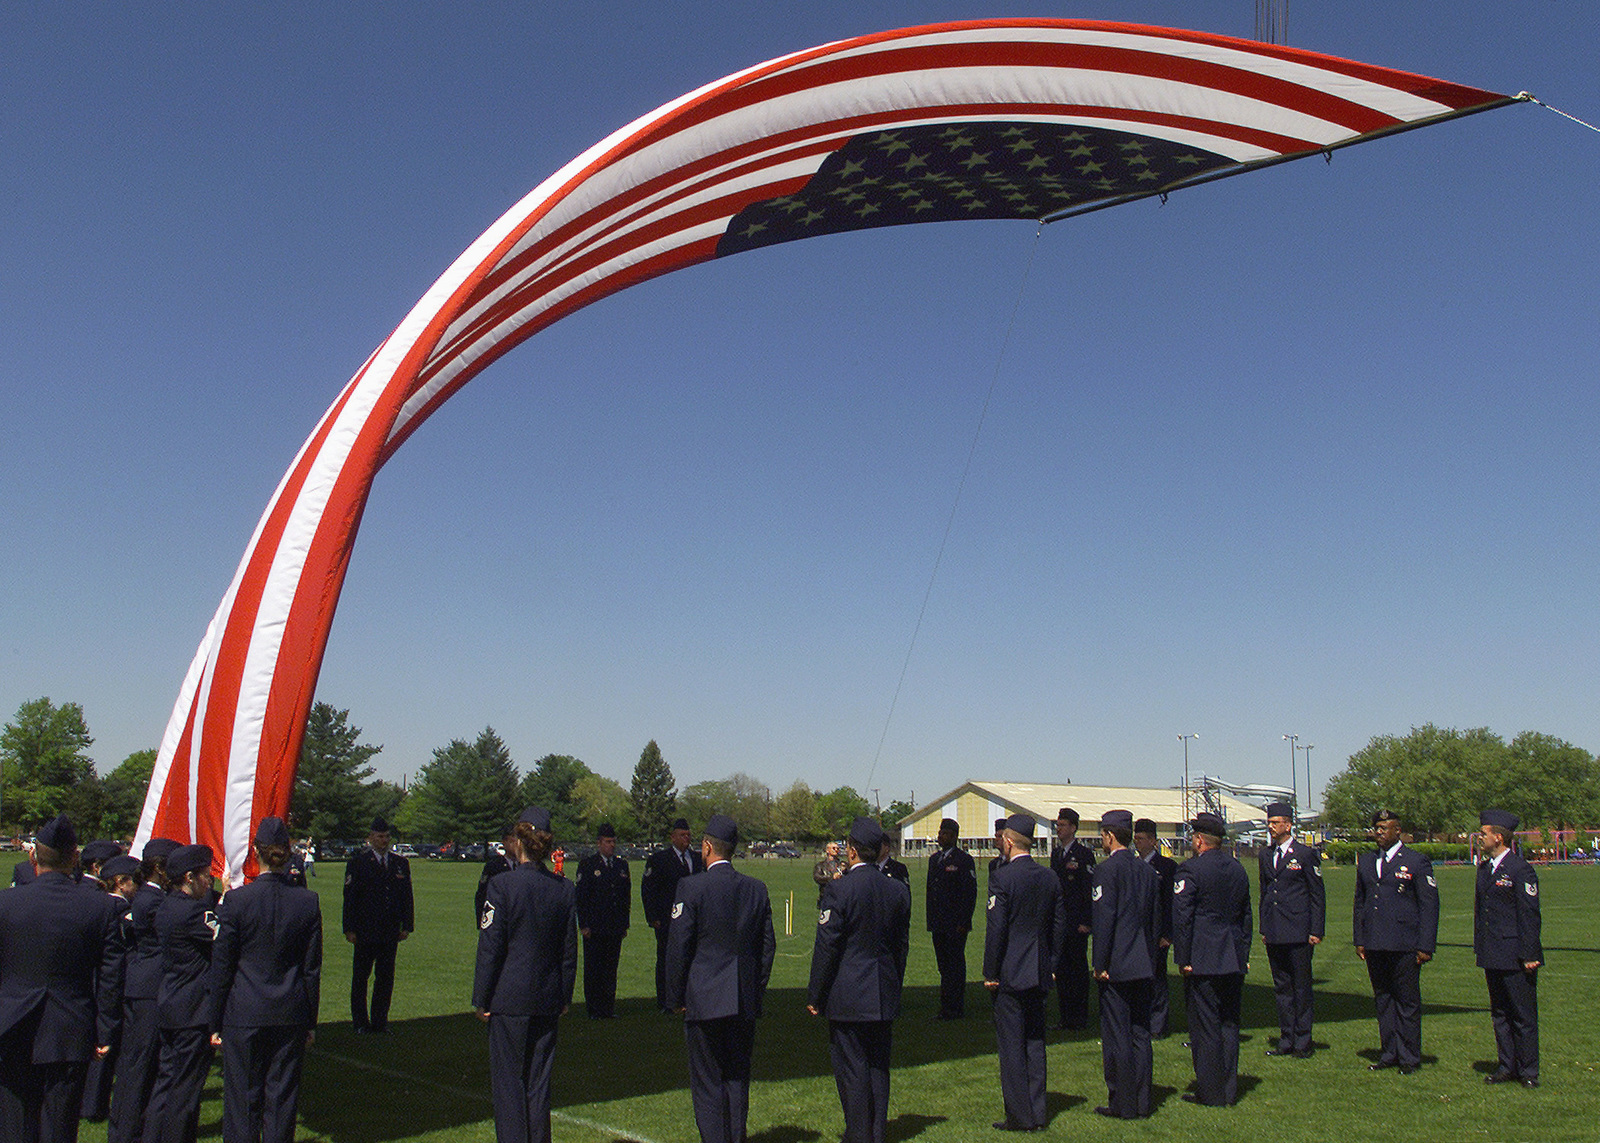 US Air Force (USAF) Non-Commissioned Officers (NCO) raise a large garrison flag during an award ceremony honoring Veterans held at Fort Dix, New Jersey (NJ)